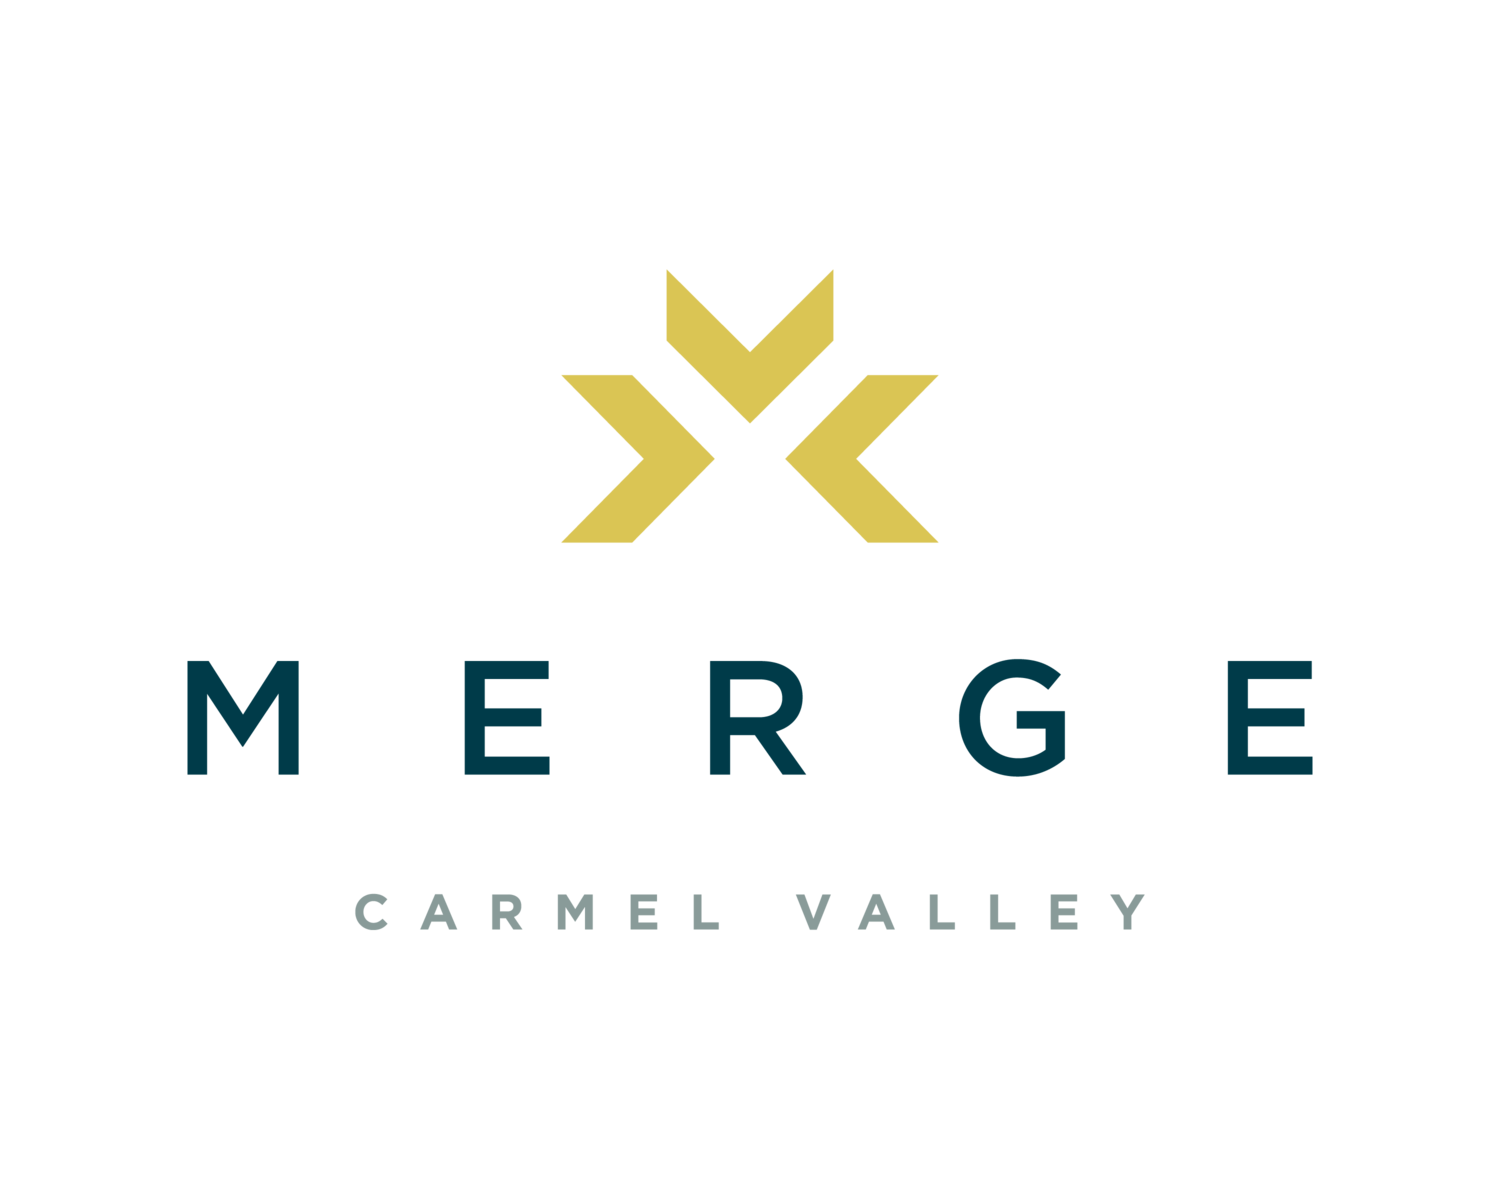 Merge Carmel Valley